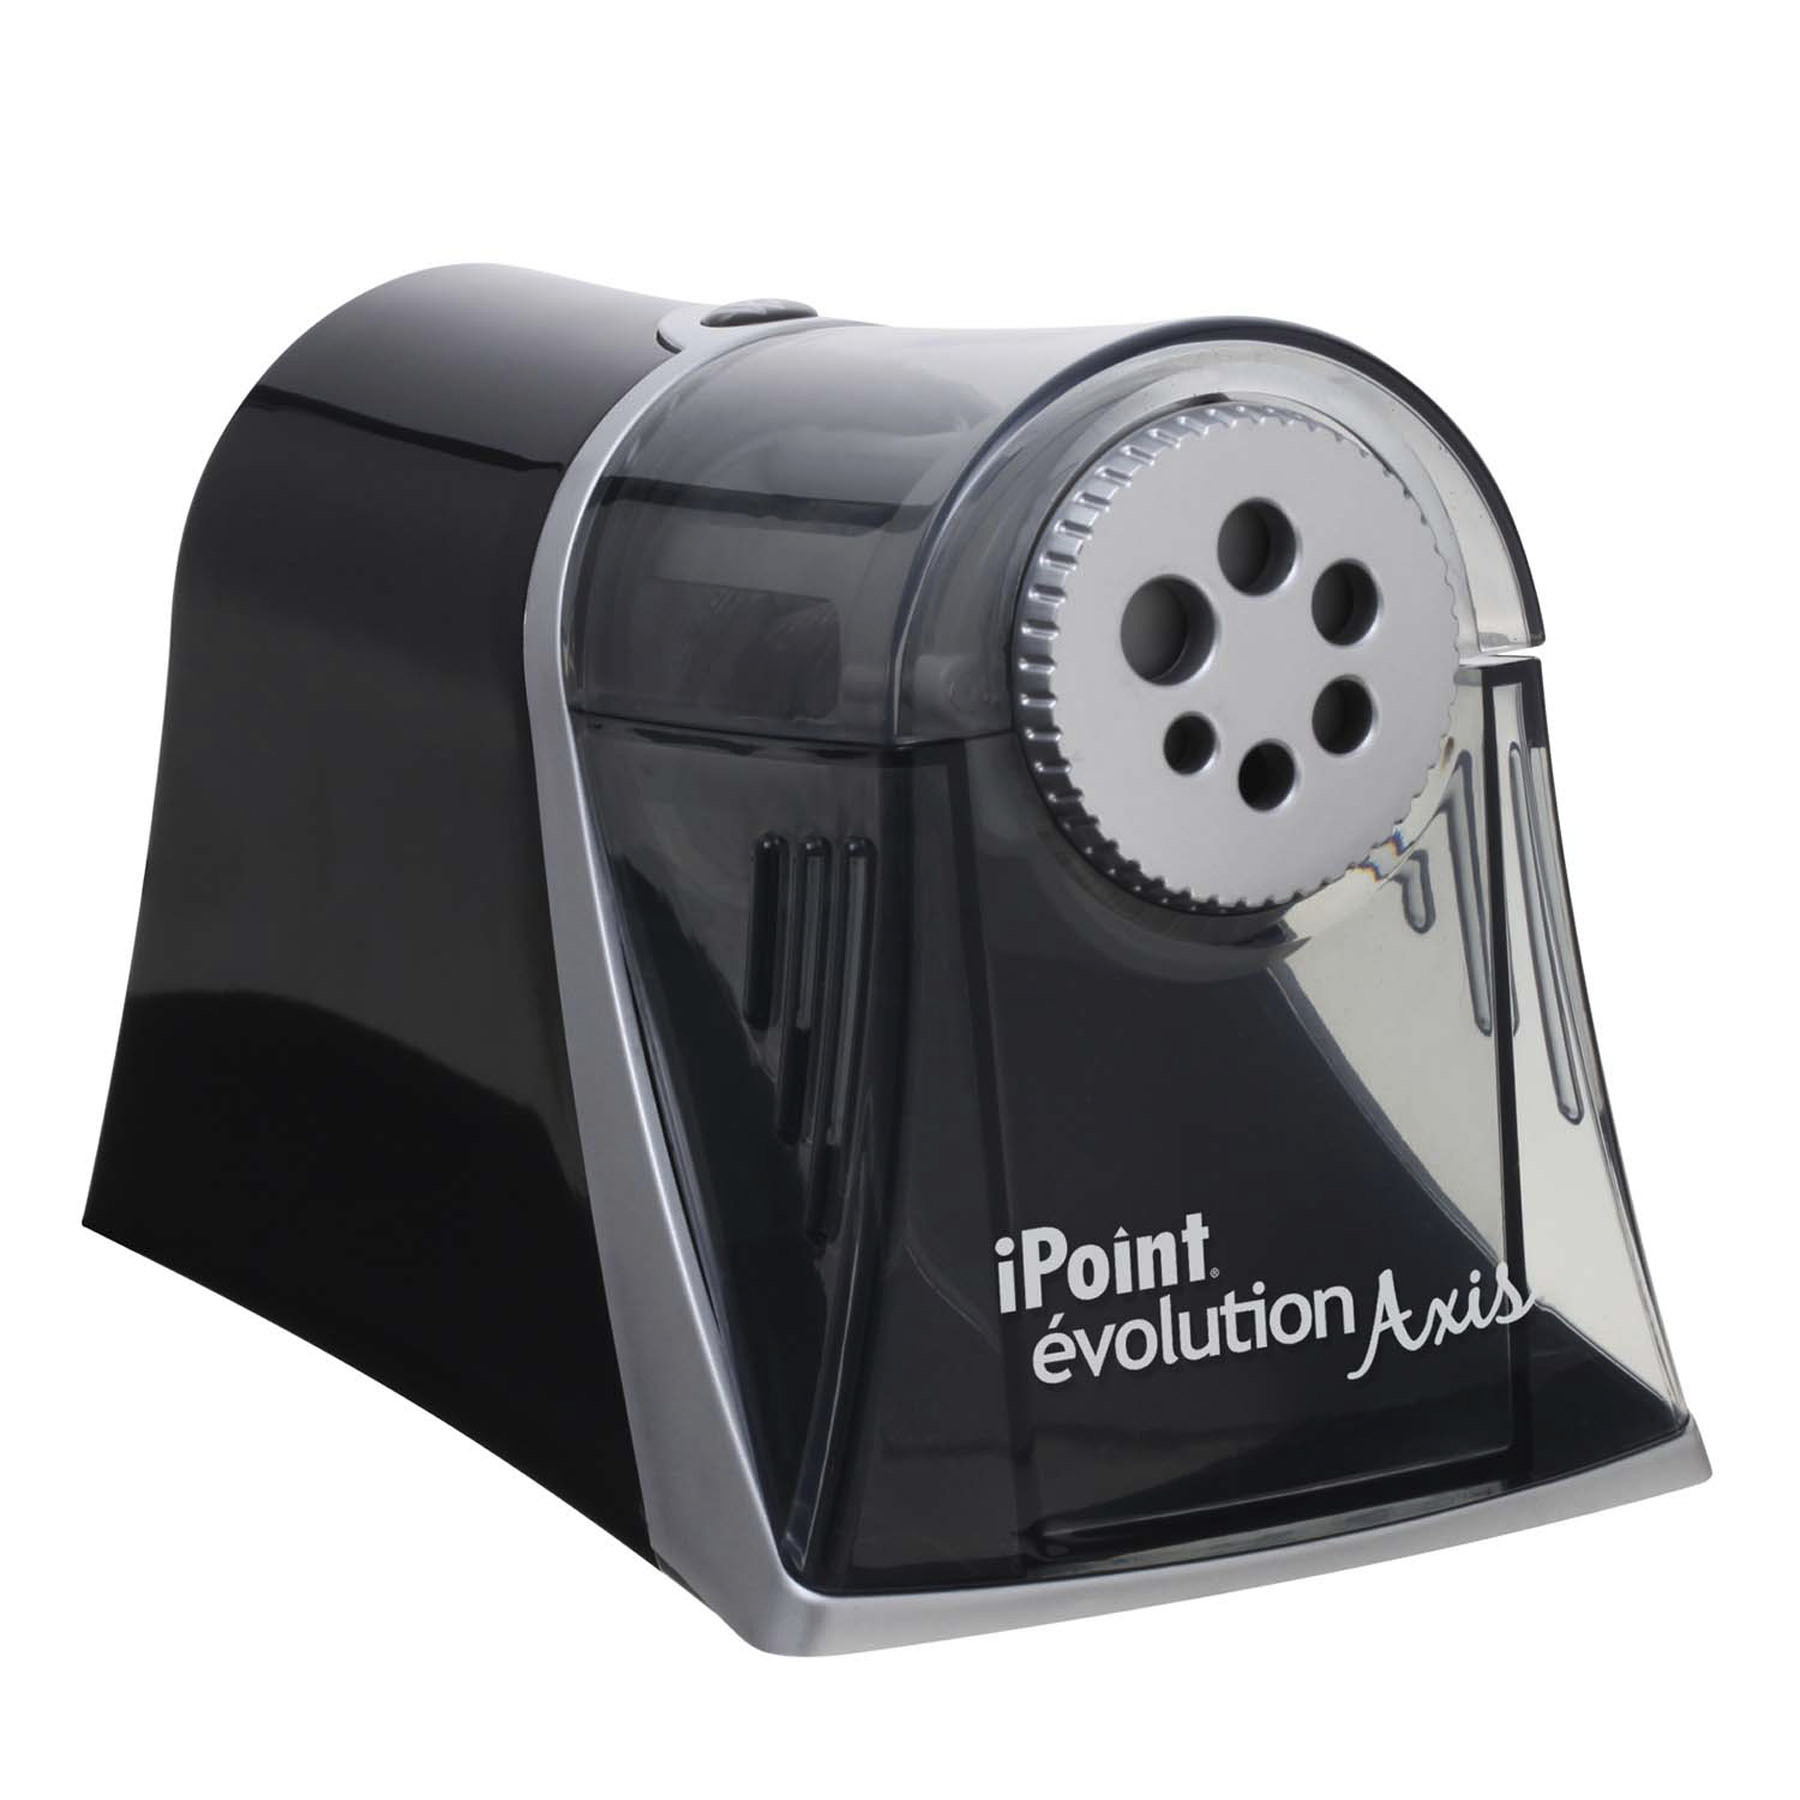 Evolution Axis Pencil Sharpener, Black/Silver, 5w x 7 1/2 d x 7 1/4h